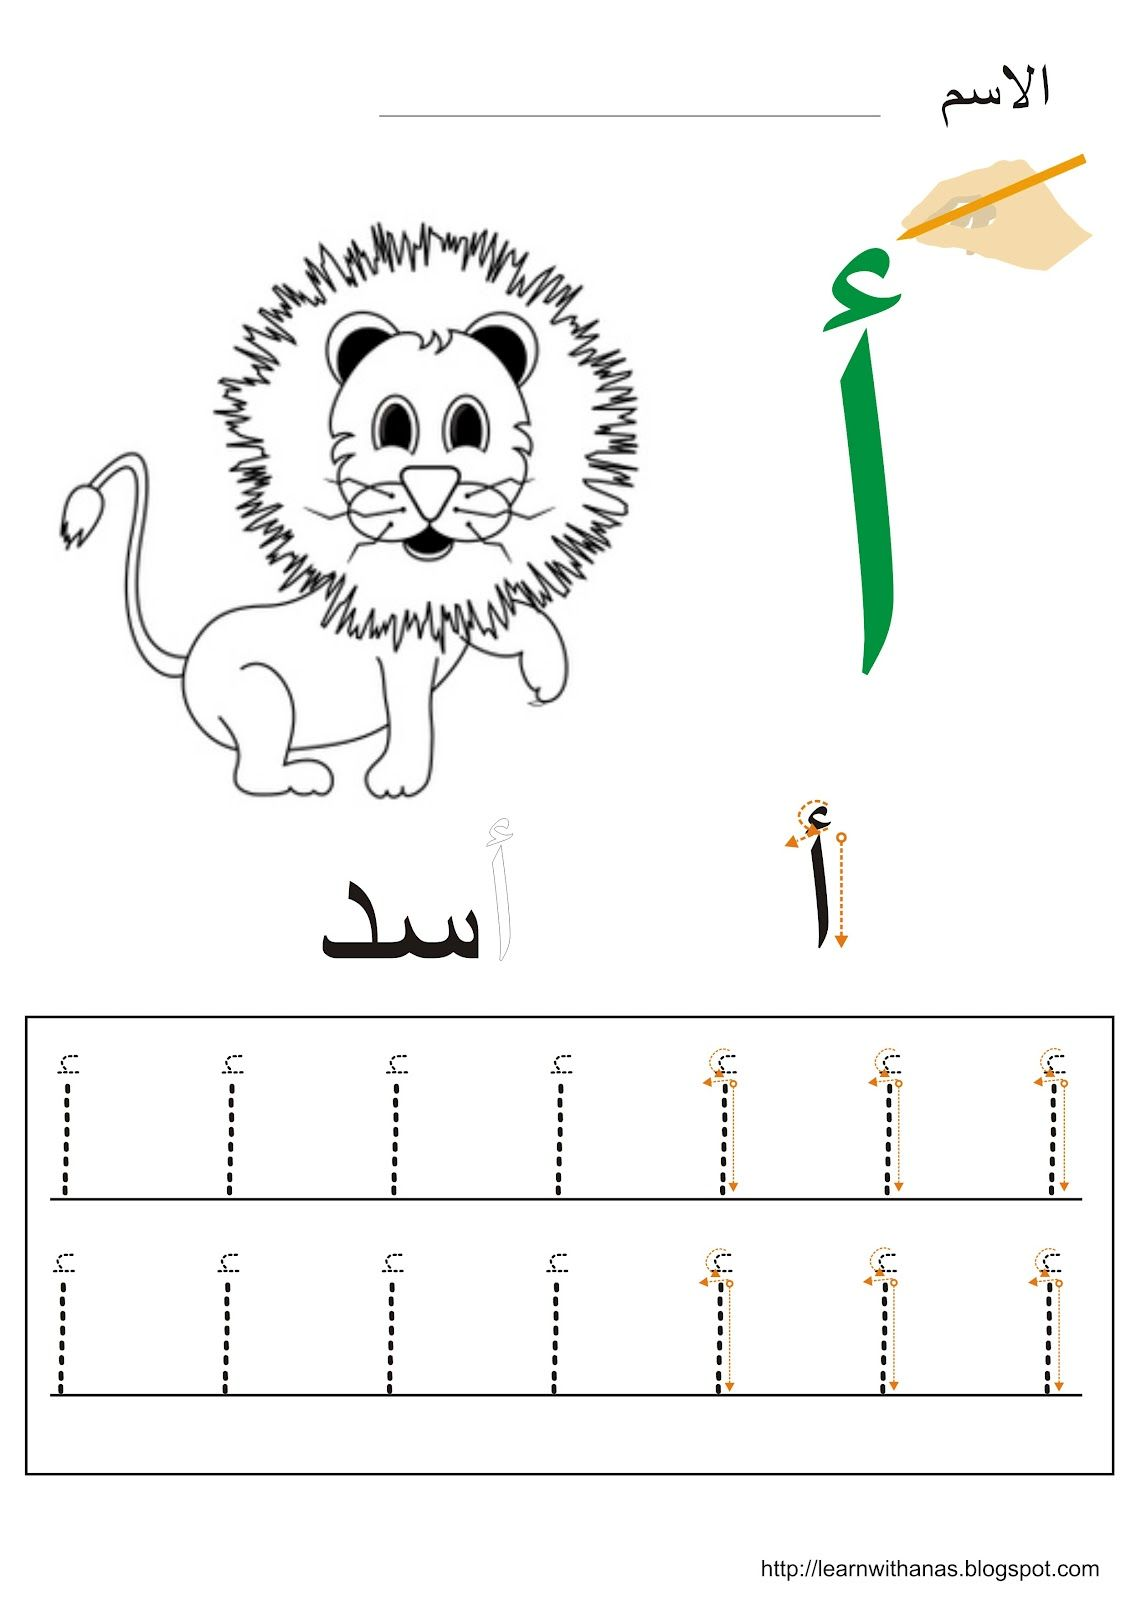 pin by esraa basil on esraa learning arabic arabic lessons arabic alphabet. Black Bedroom Furniture Sets. Home Design Ideas